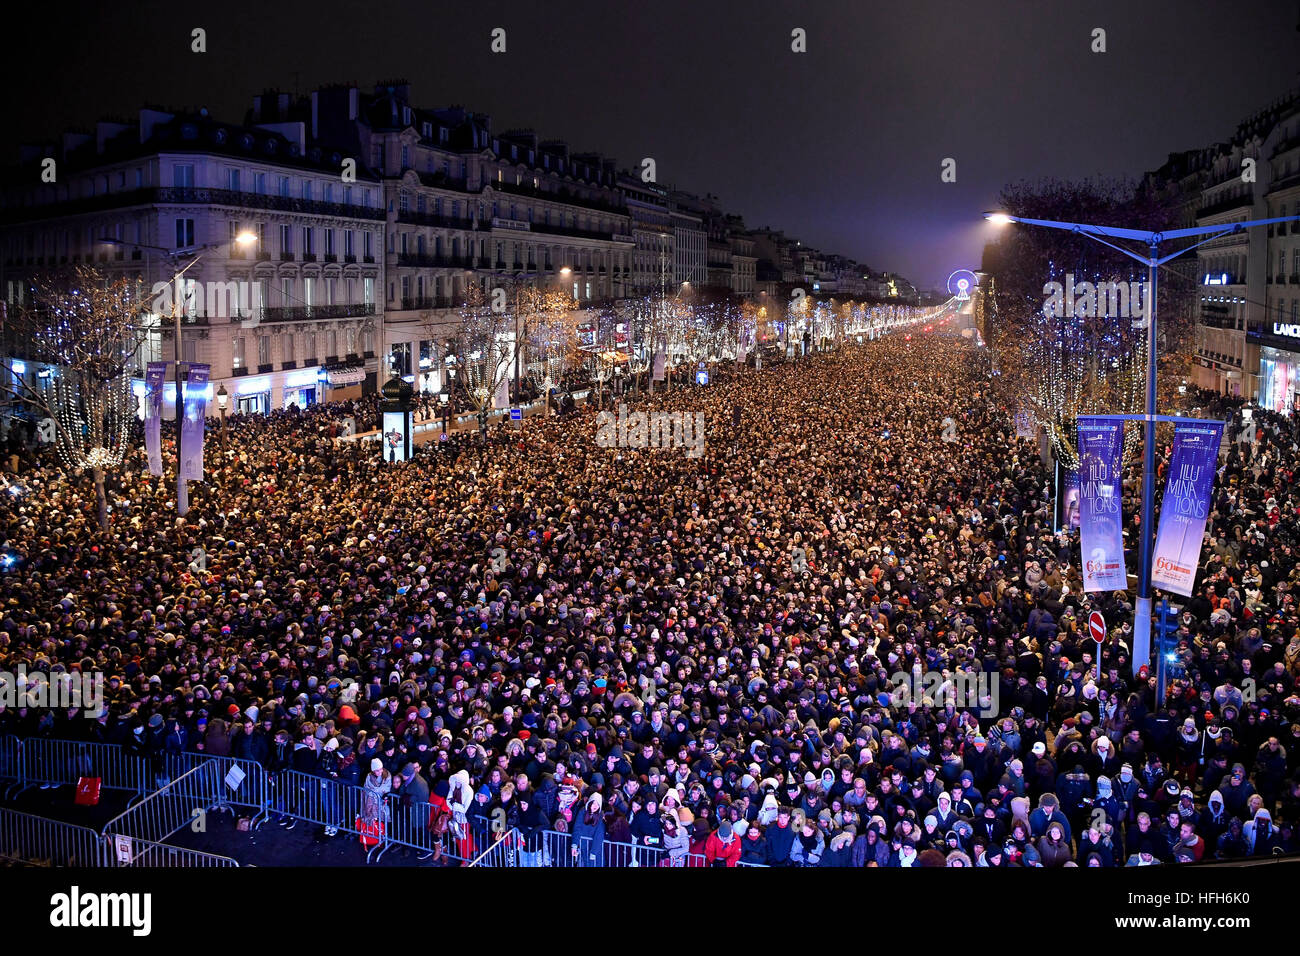 Paris  France  1st Jan  2017  People attend New Year celebration on     Paris  France  1st Jan  2017  People attend New Year celebration on Stock  Photo  130070836   Alamy